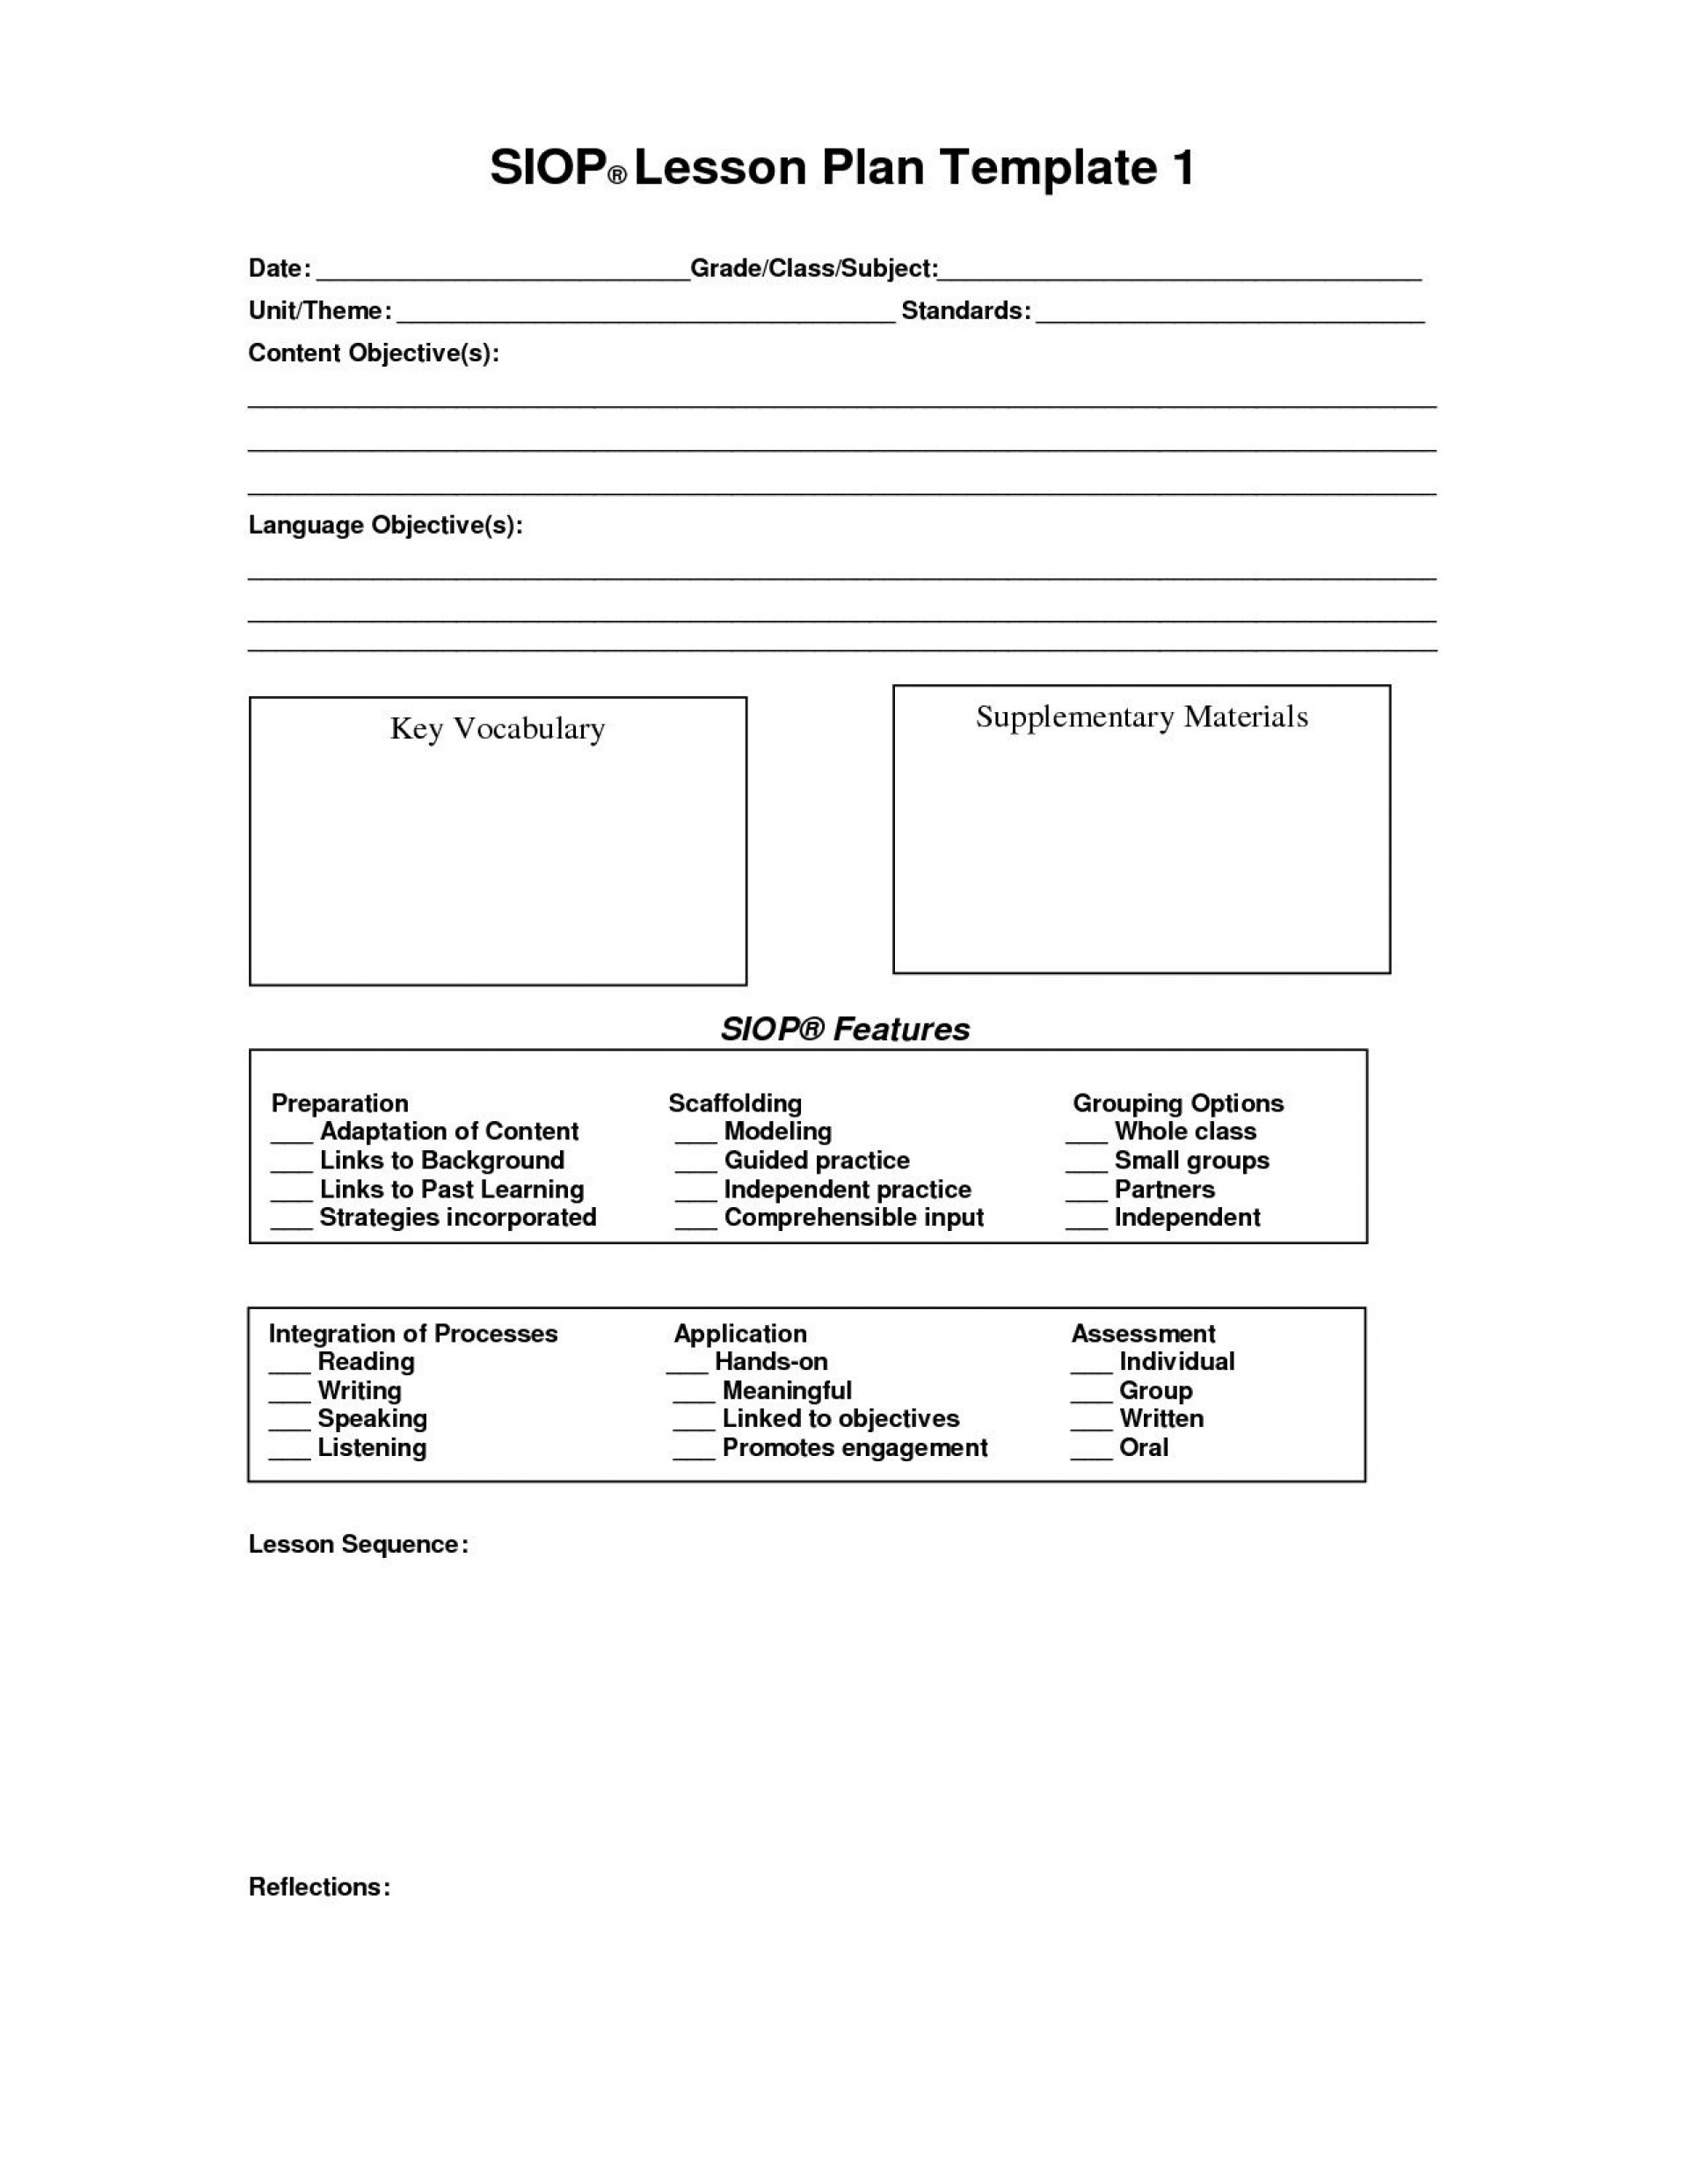 000 Staggering Siop Lesson Plan Template 1 Image  Example First Grade Word Document 1st1920